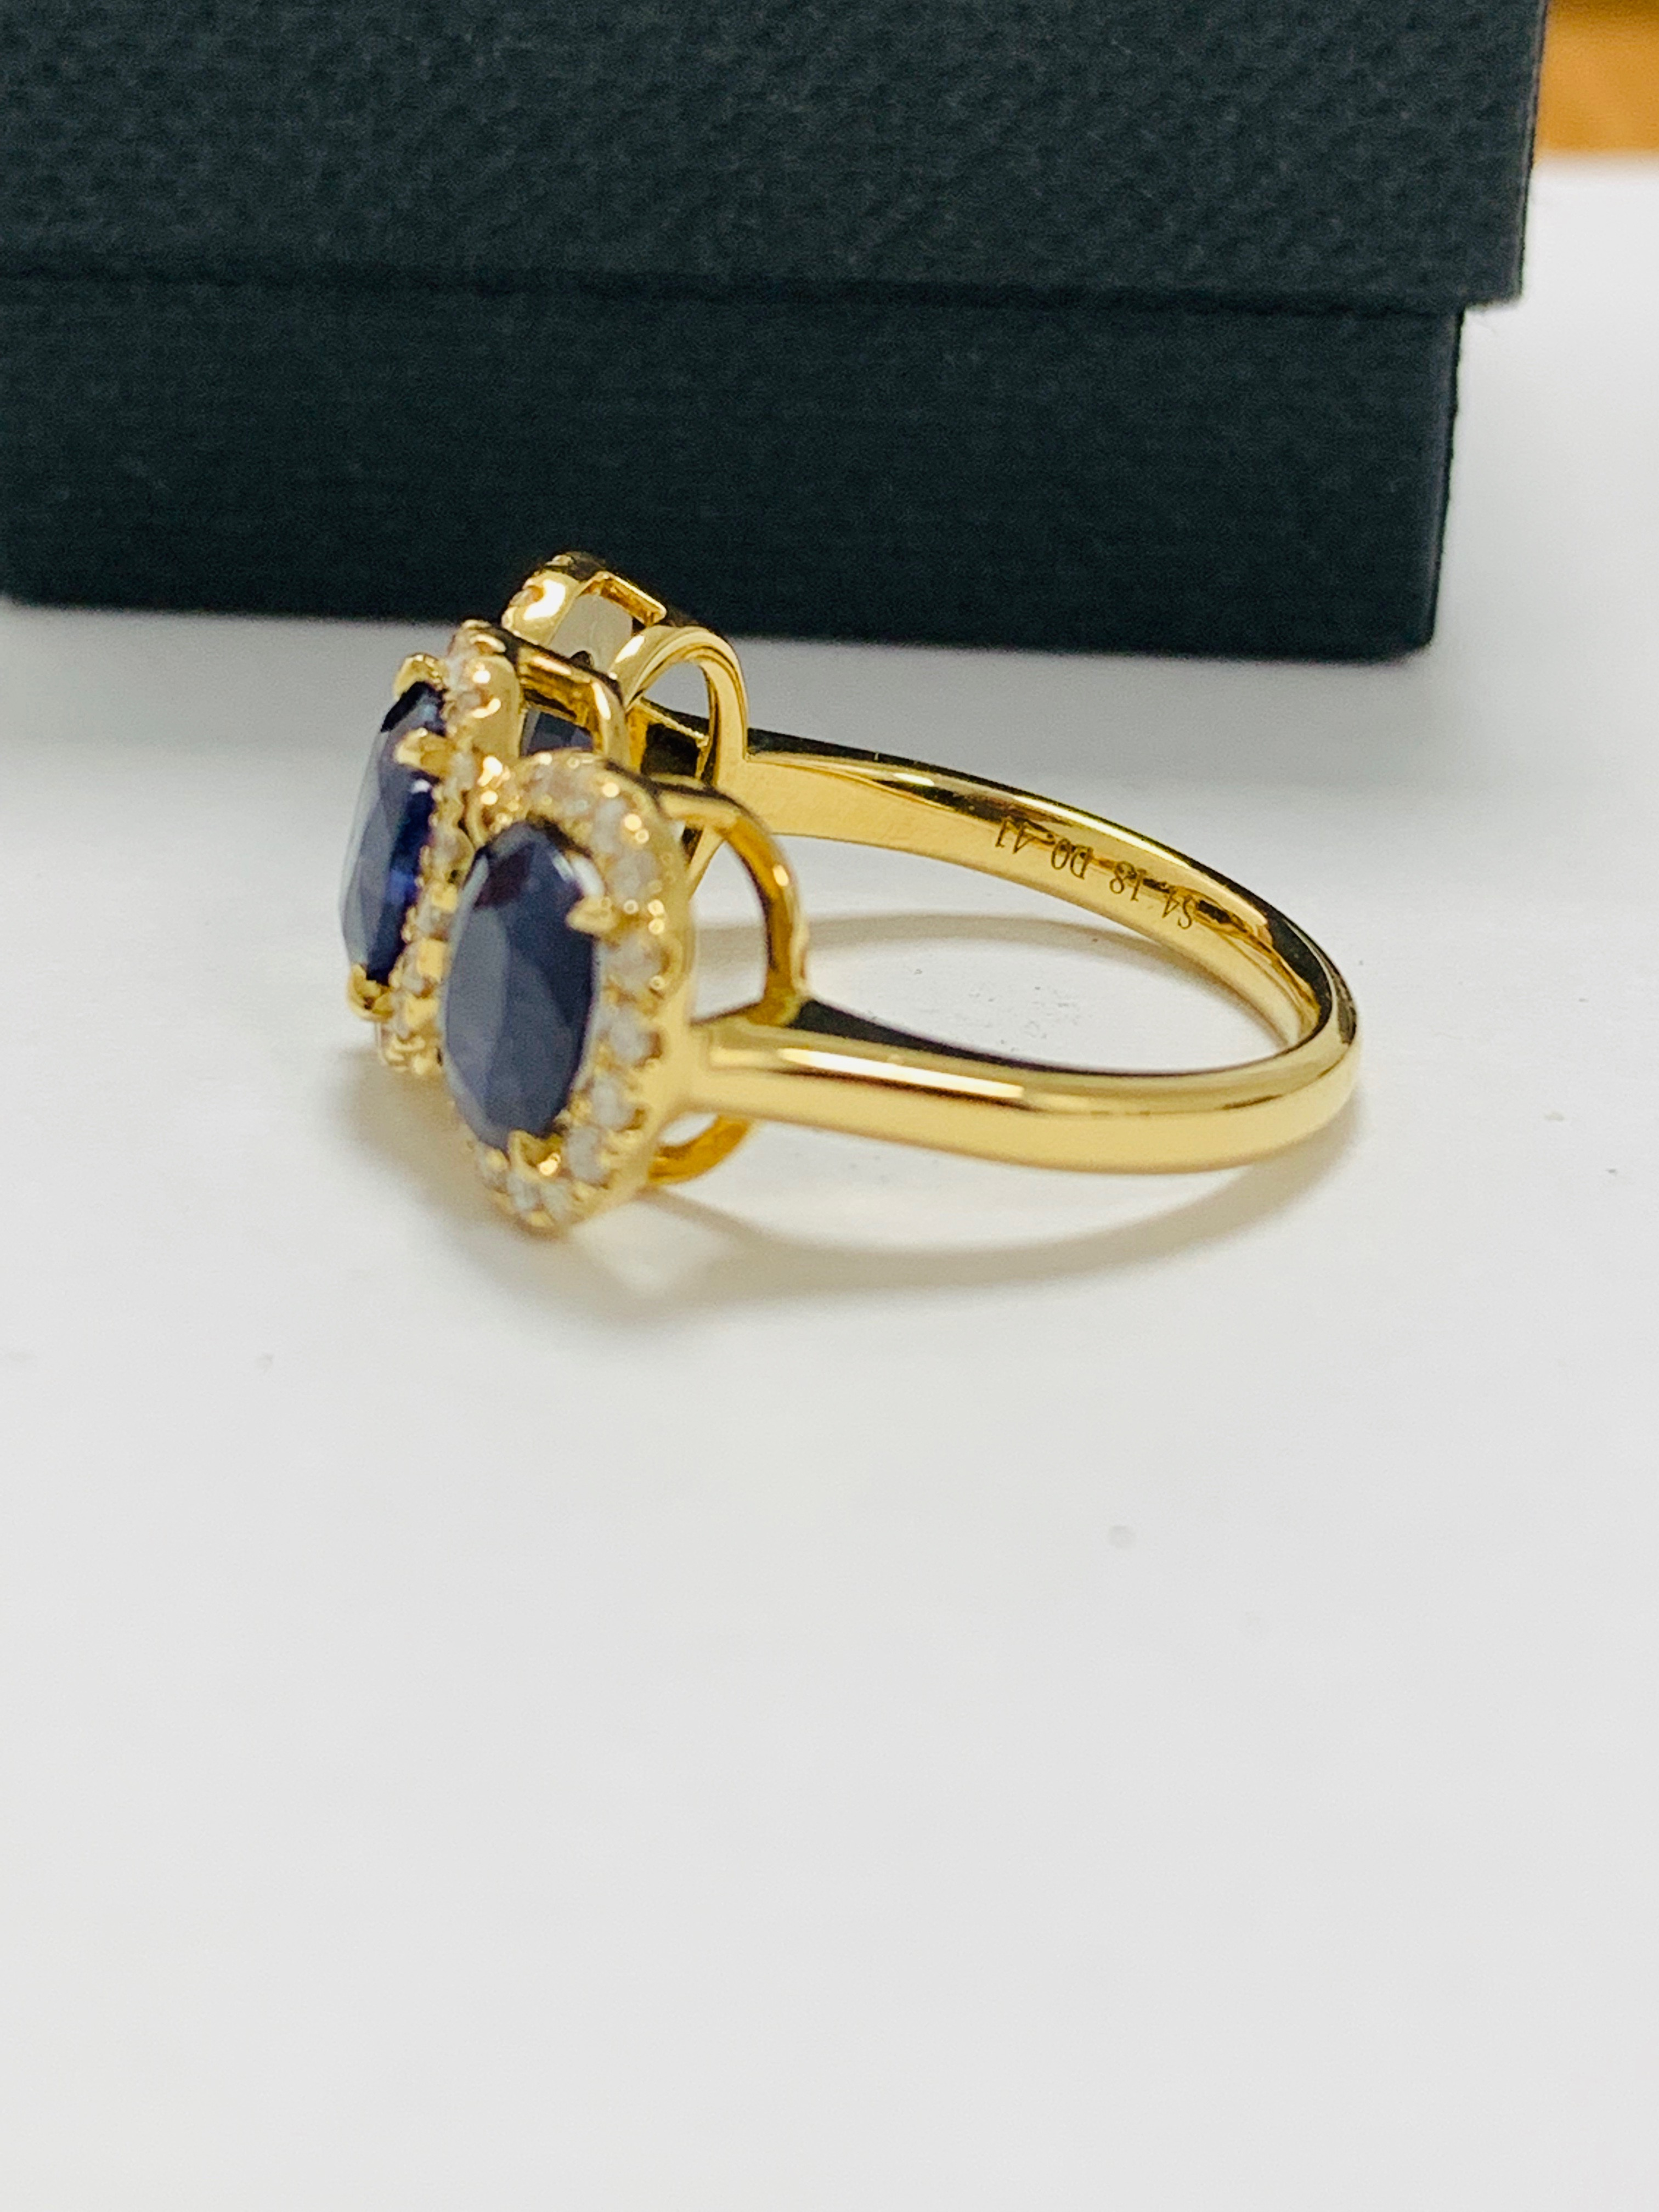 18ct yellow gold sapphire and diamond ring - Image 4 of 12